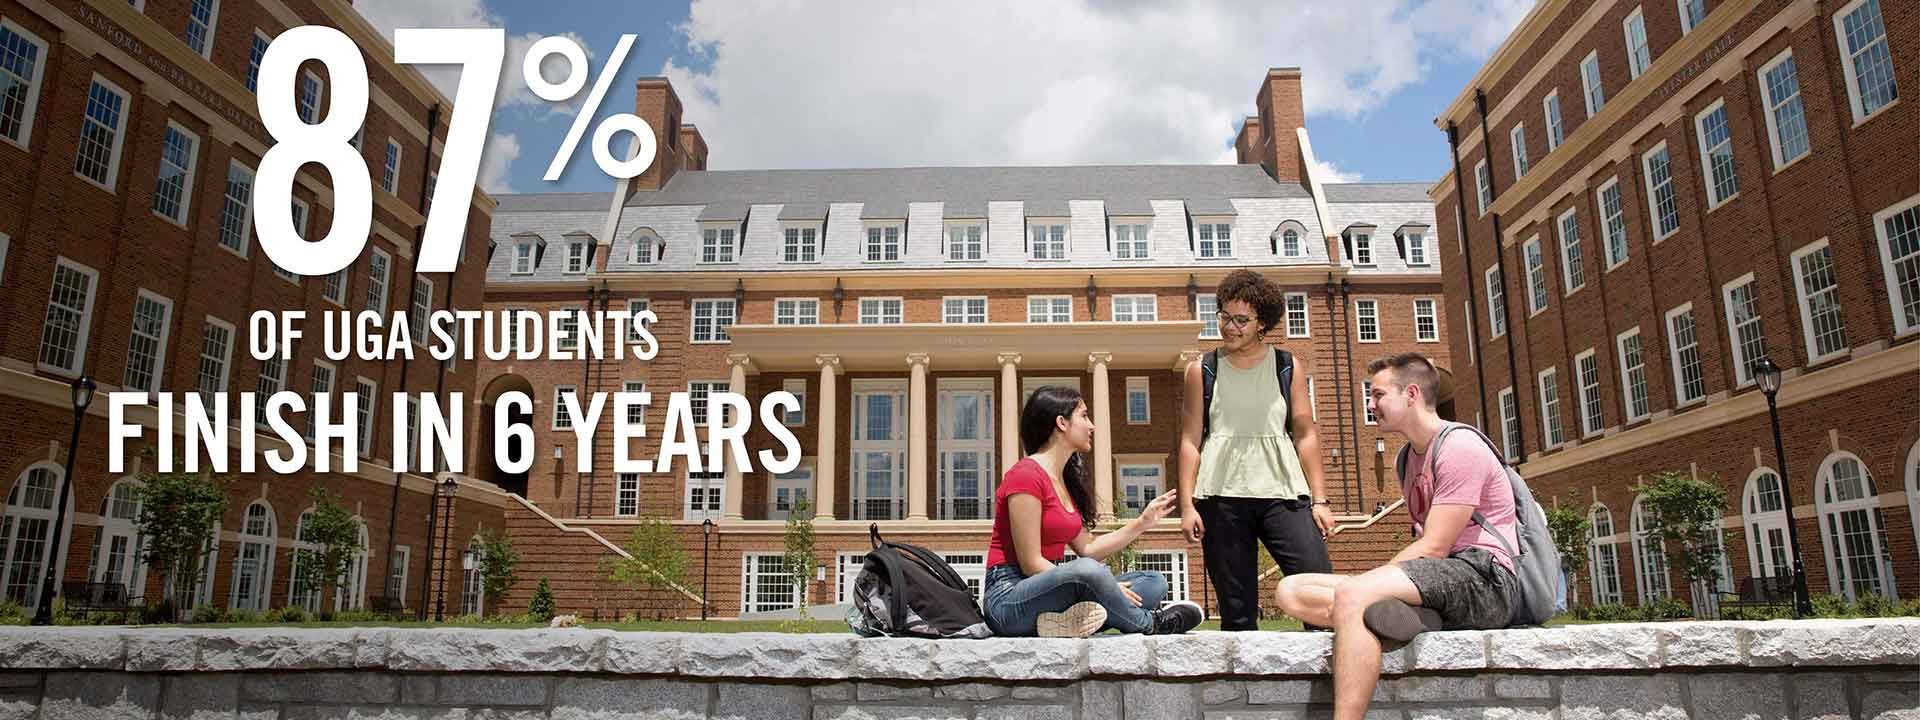 Completion rates at the University of Georgia continue to set records, thanks to a number of ongoing initiatives to enhance the academic environment and student support.